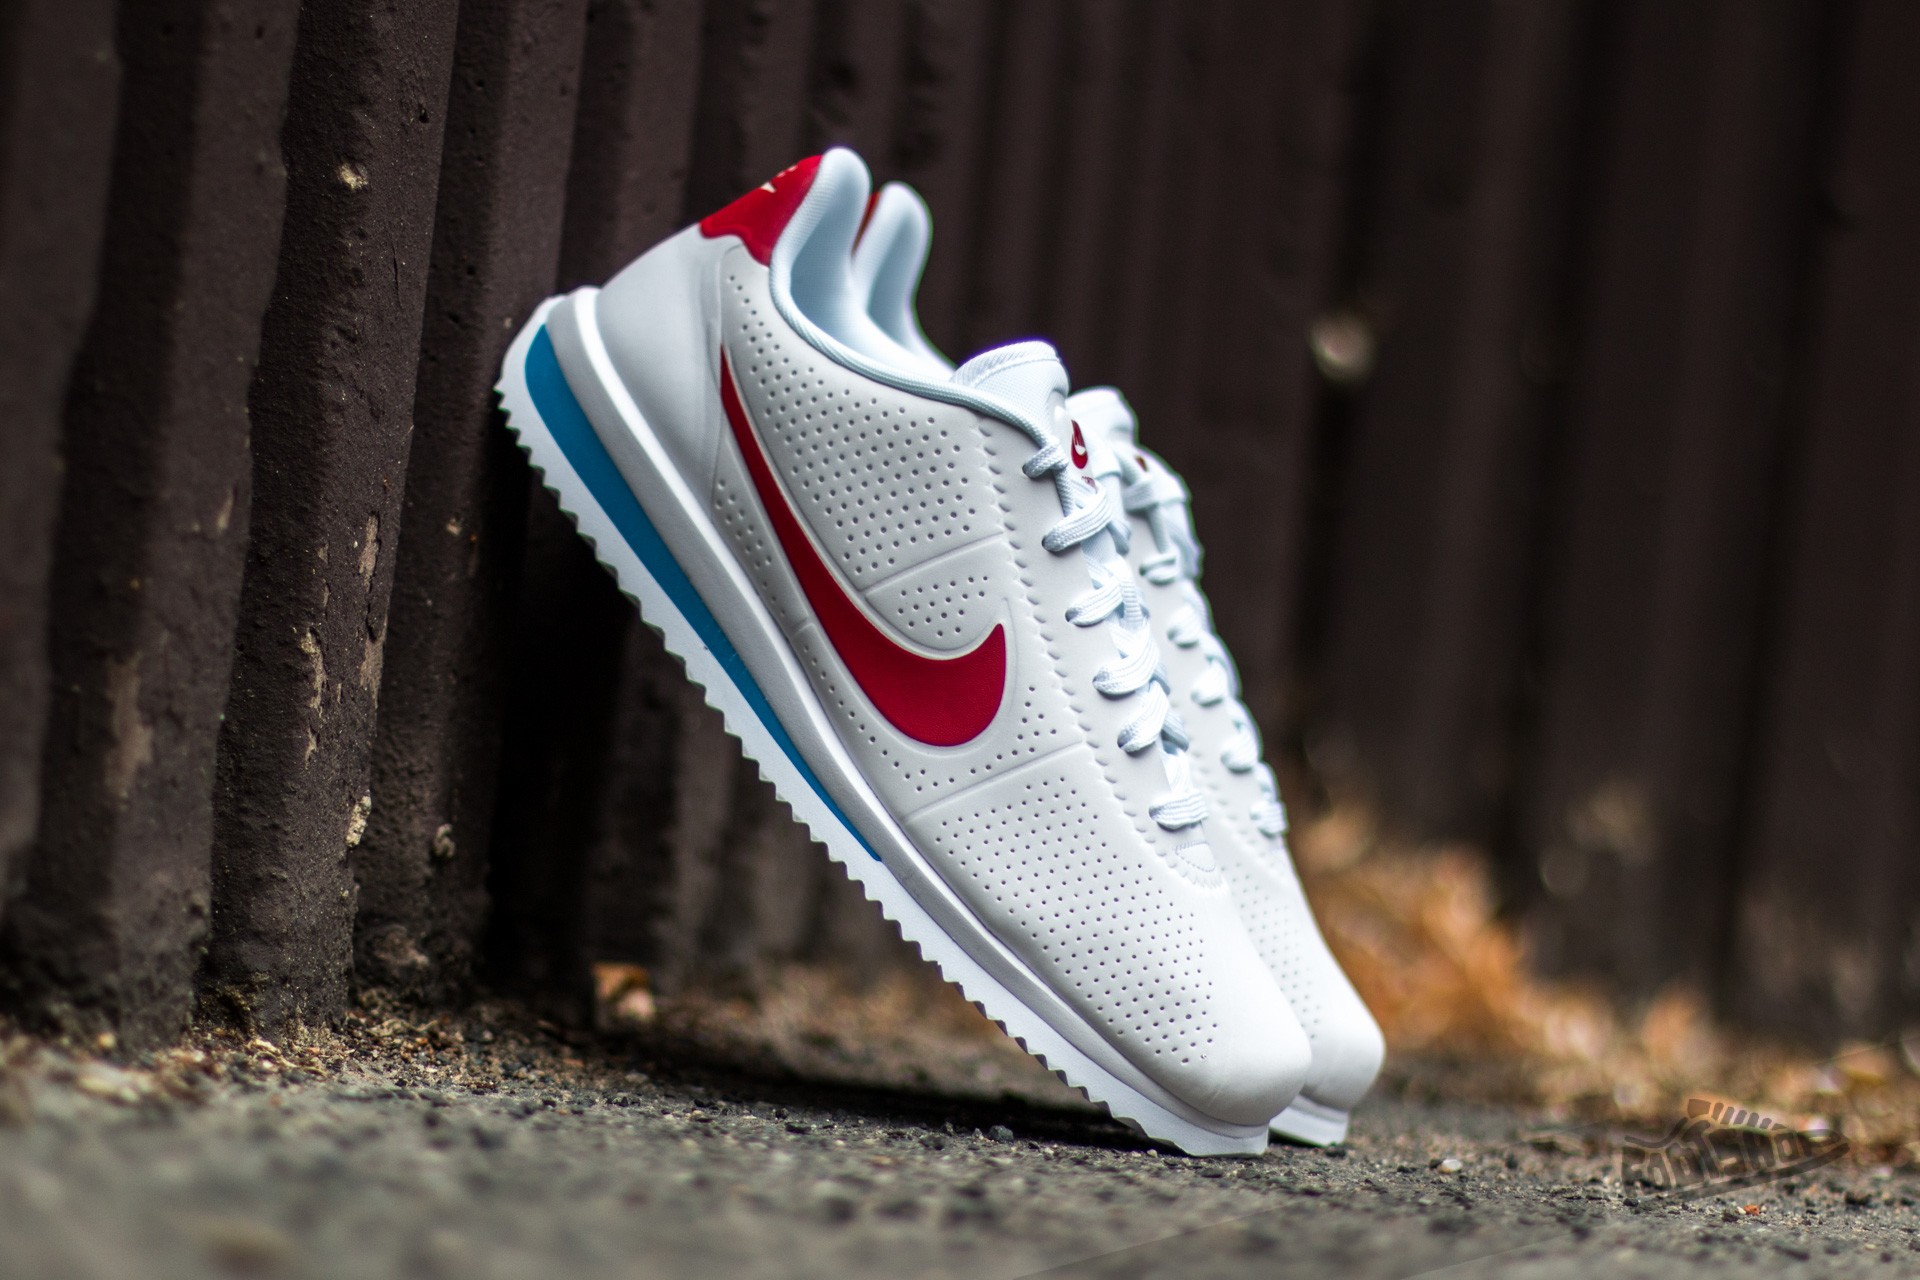 Nike Cortez Ultra Moire White  Varsity Red-Varsity Blue  9dba9c7cd